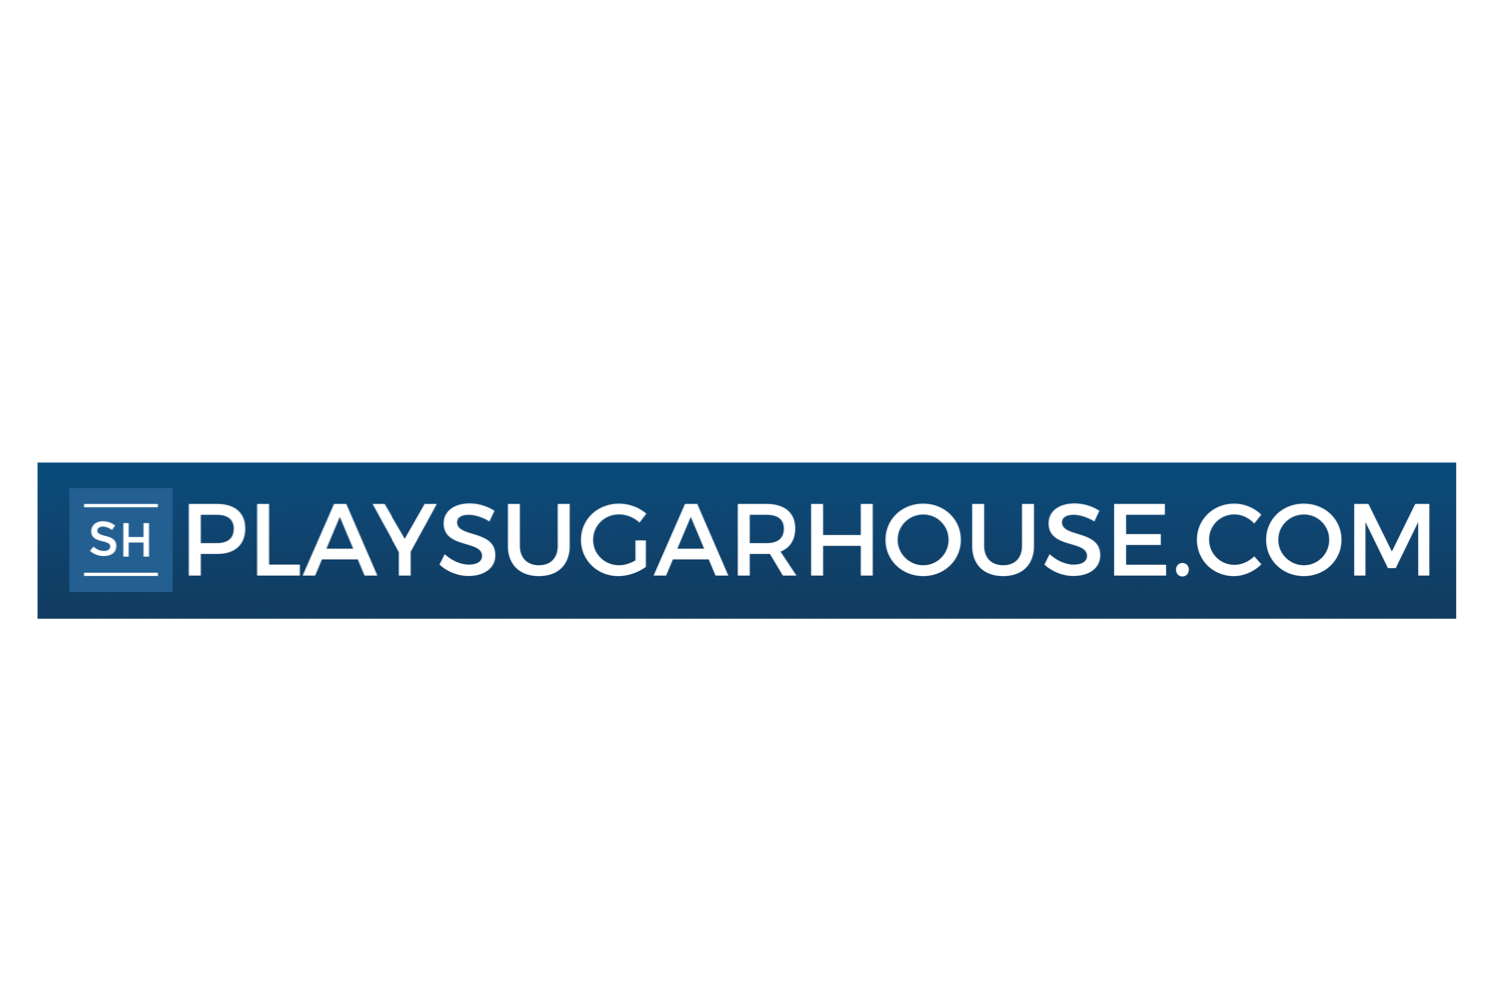 Sugarhouse Online Sportsbook is Live and Taking Bets in NJ!